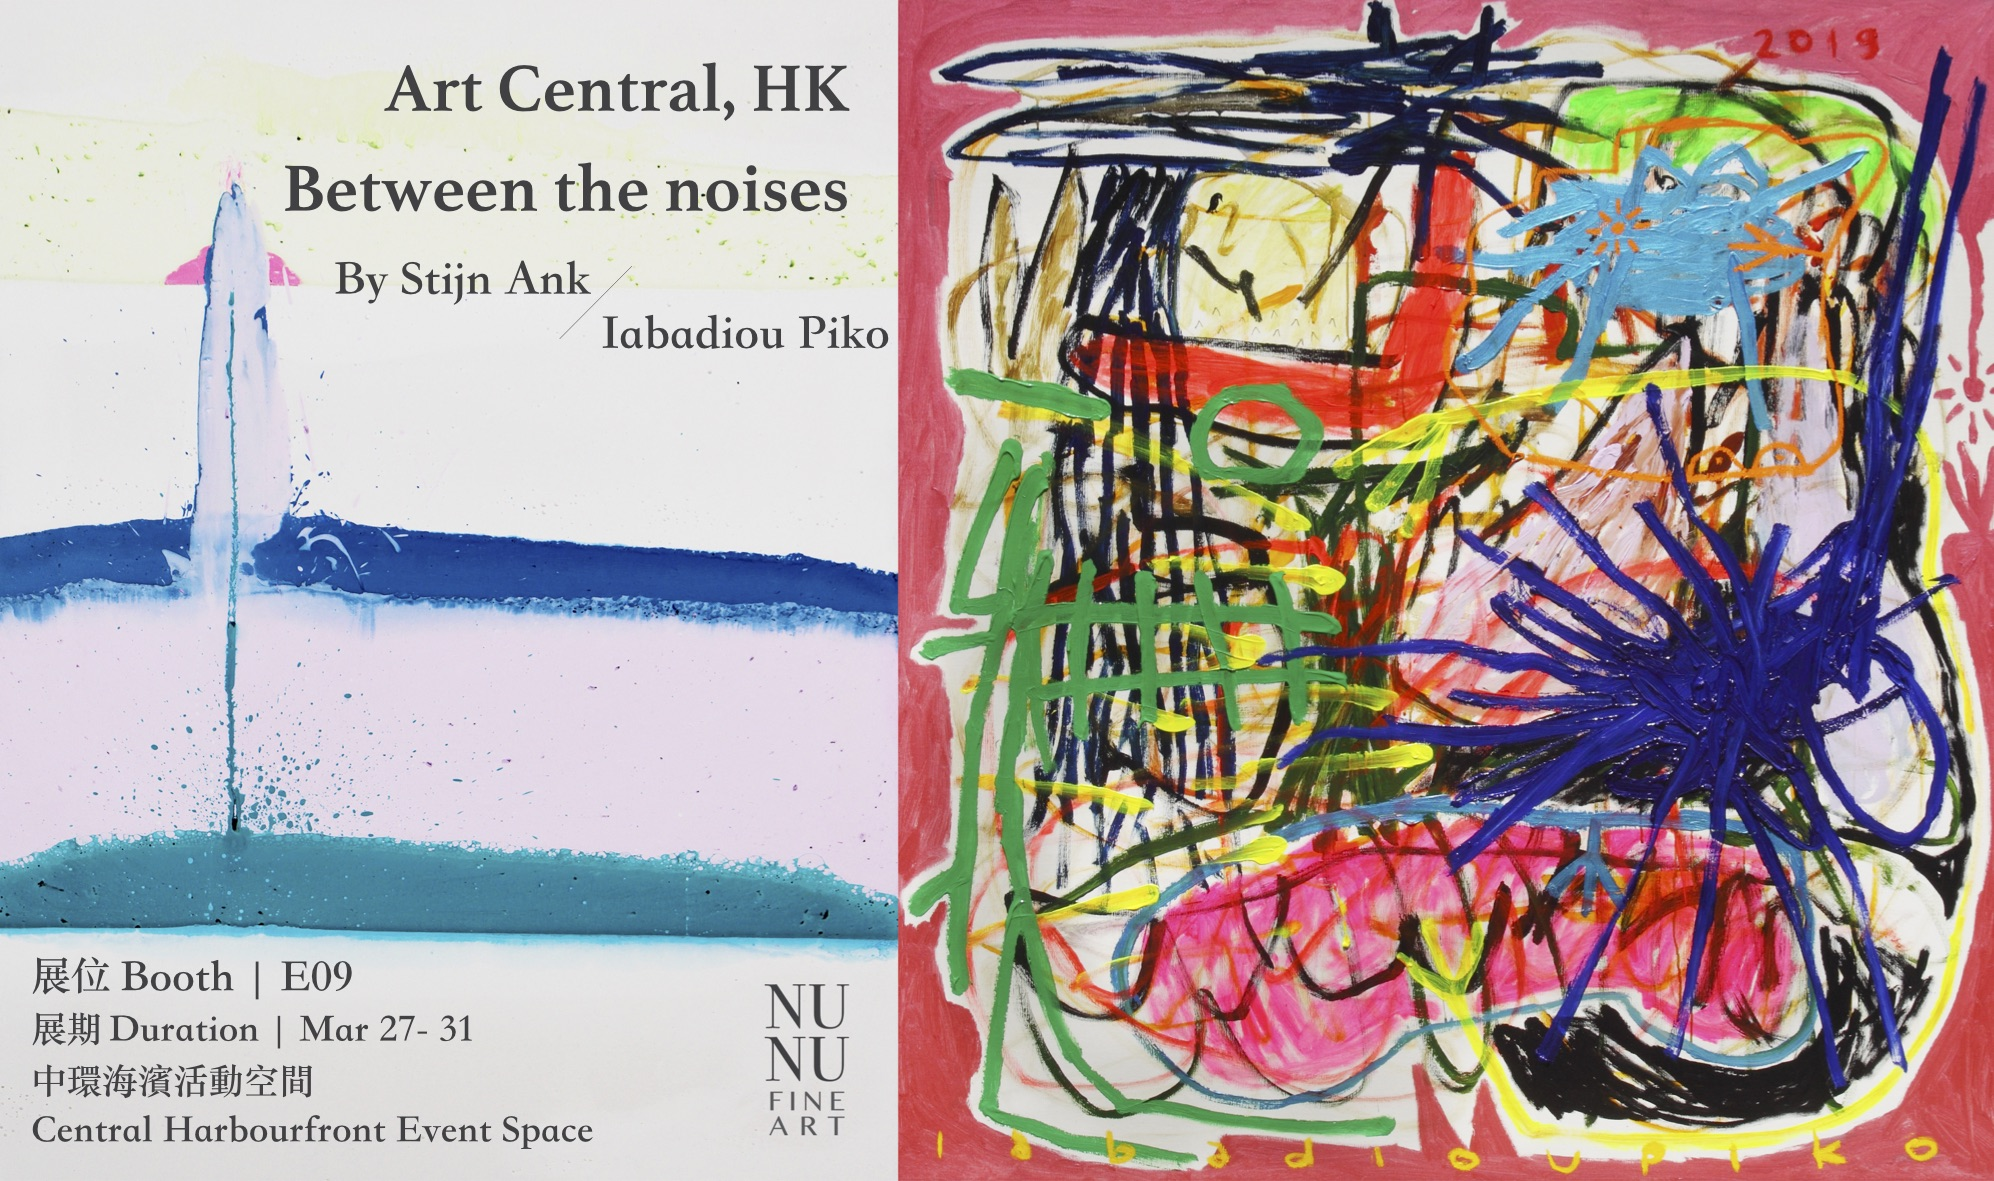 Art Central Hong Kong 2019.03.27-31   Artists | Stijn Ank, Iabadiou Piko